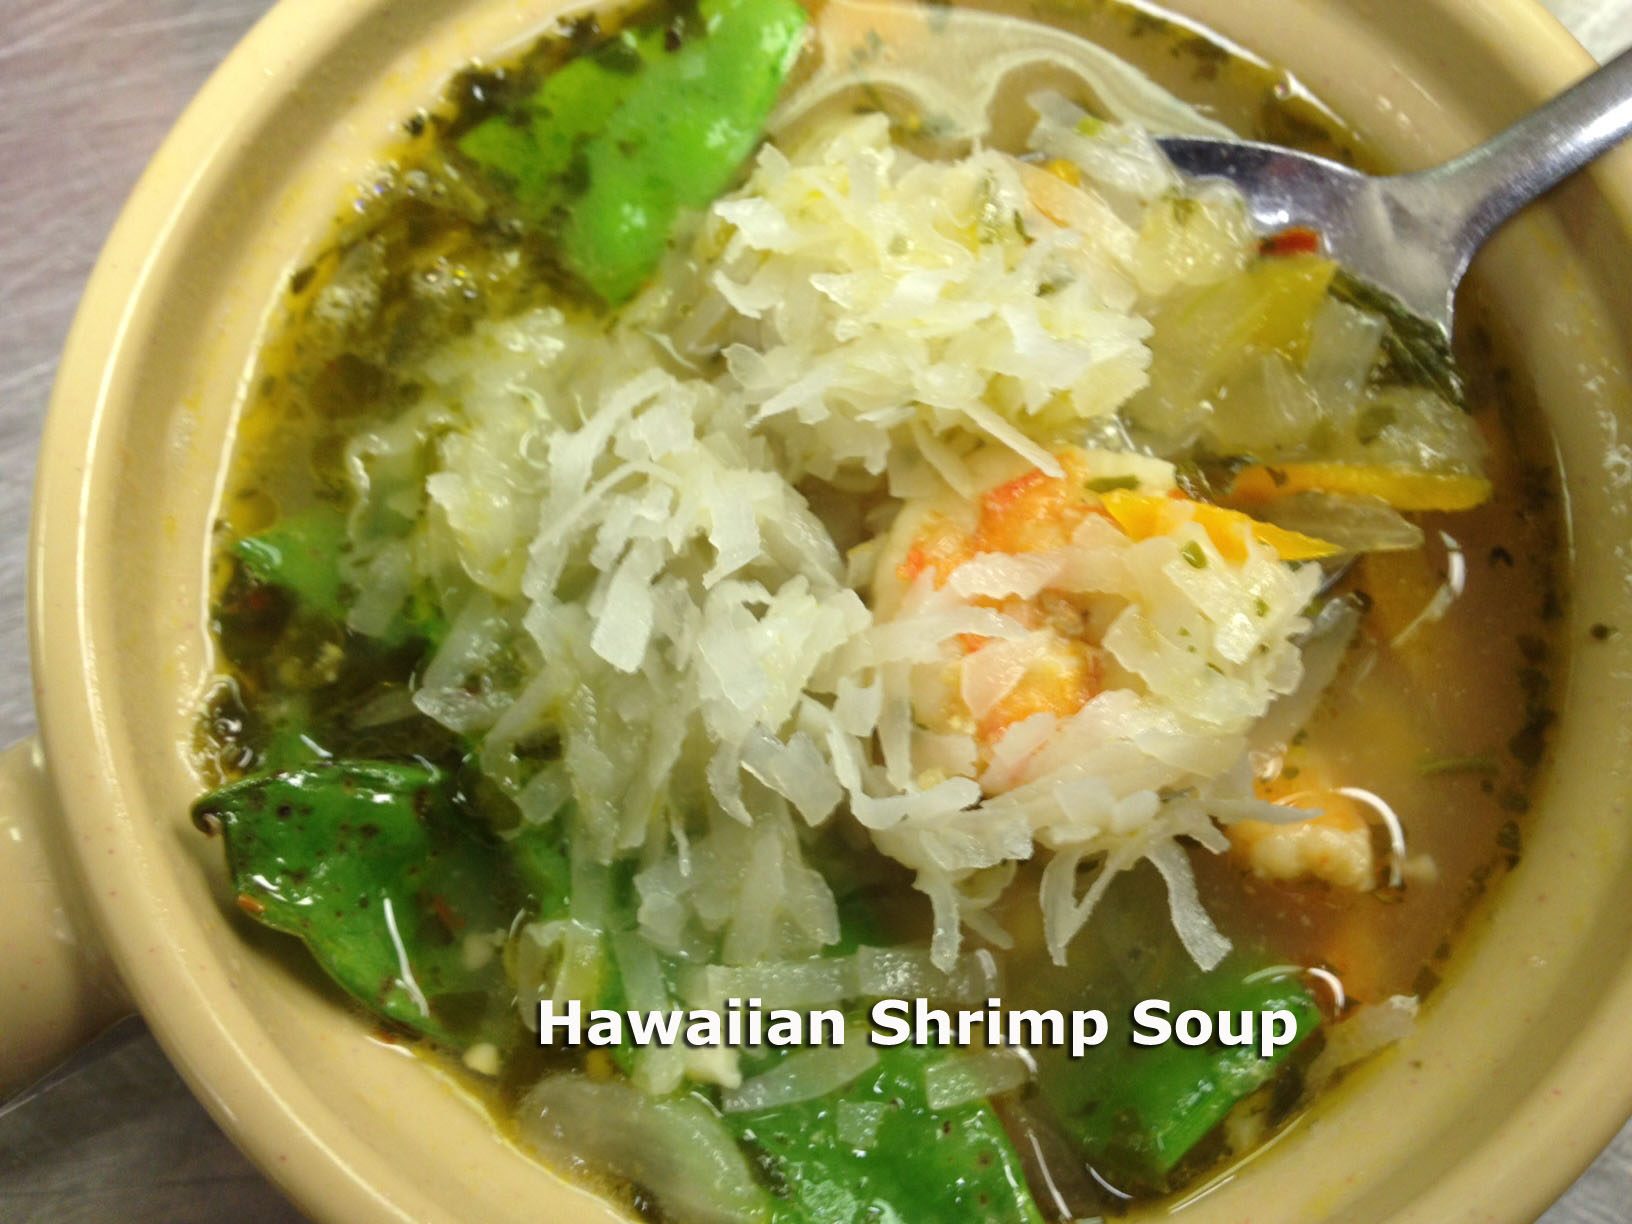 Hawaiian Shrimp Soup